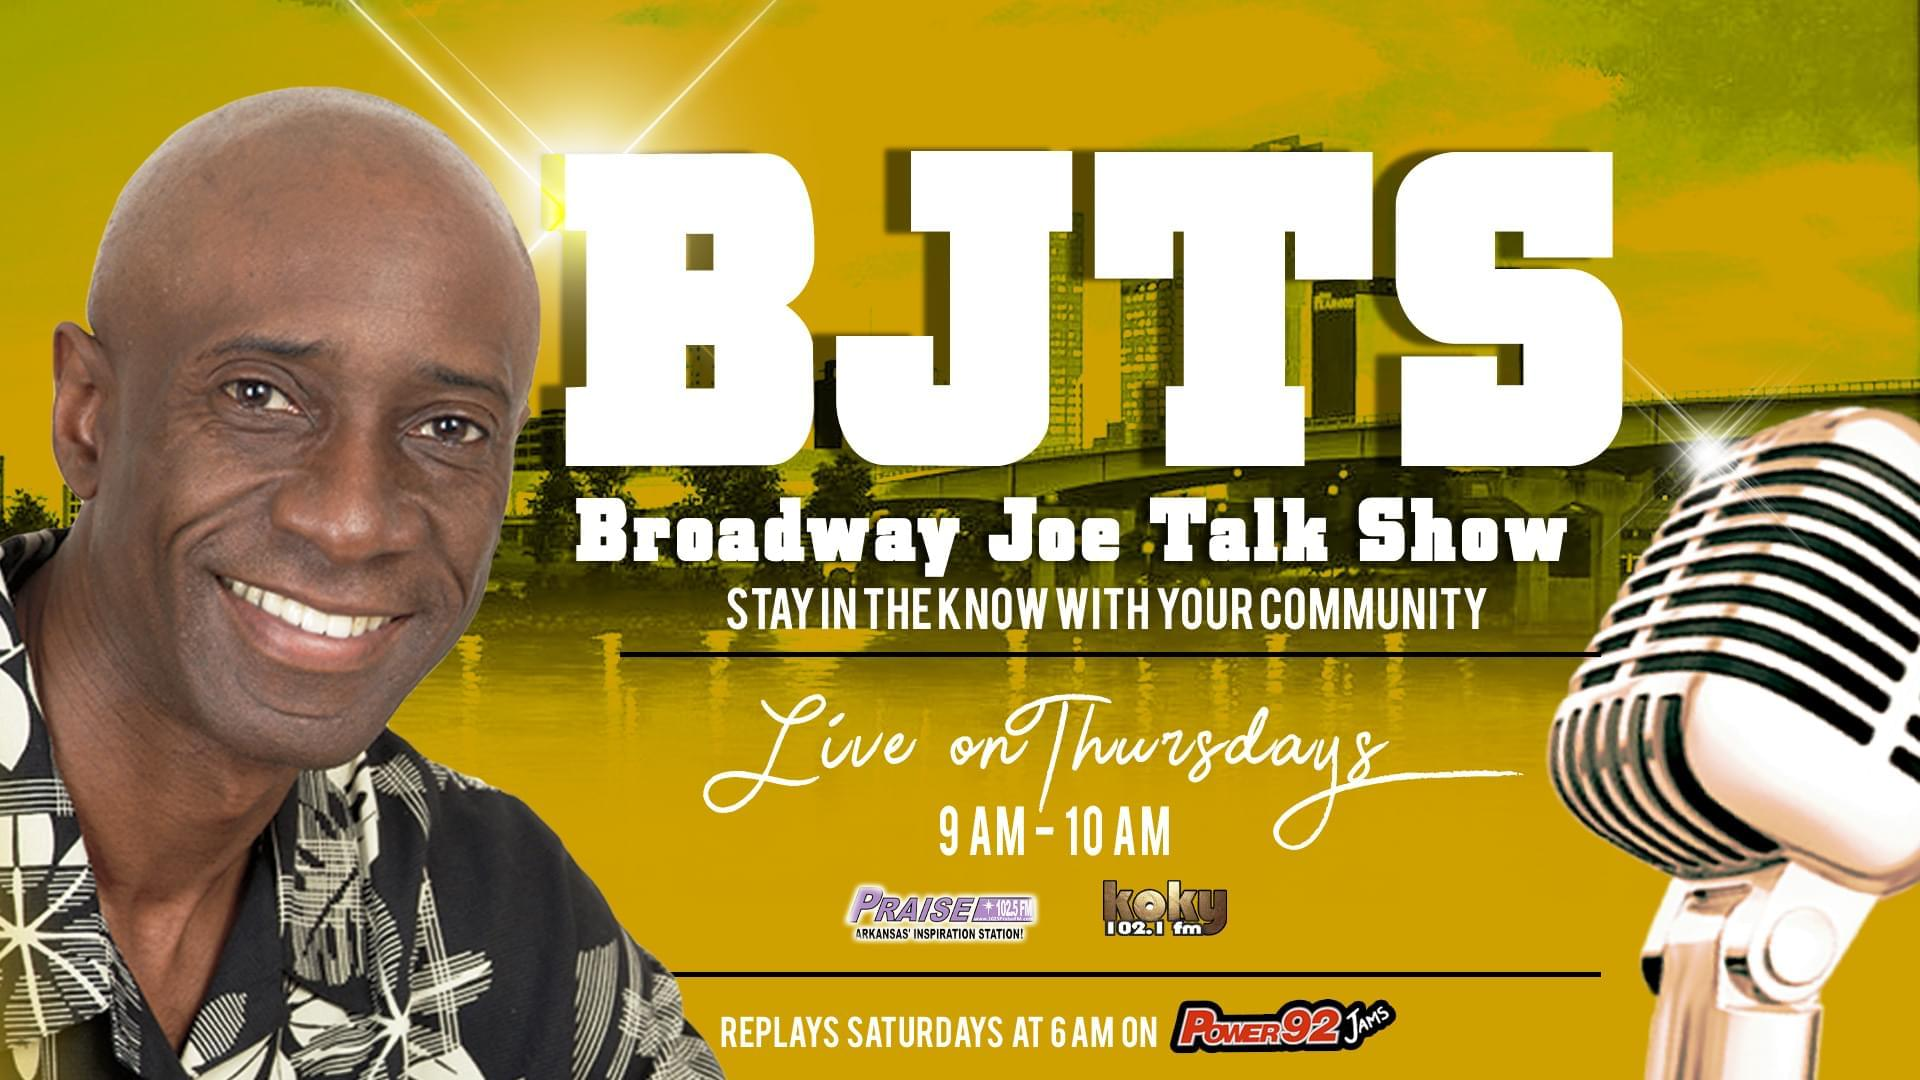 Broadway Joe Talk Show